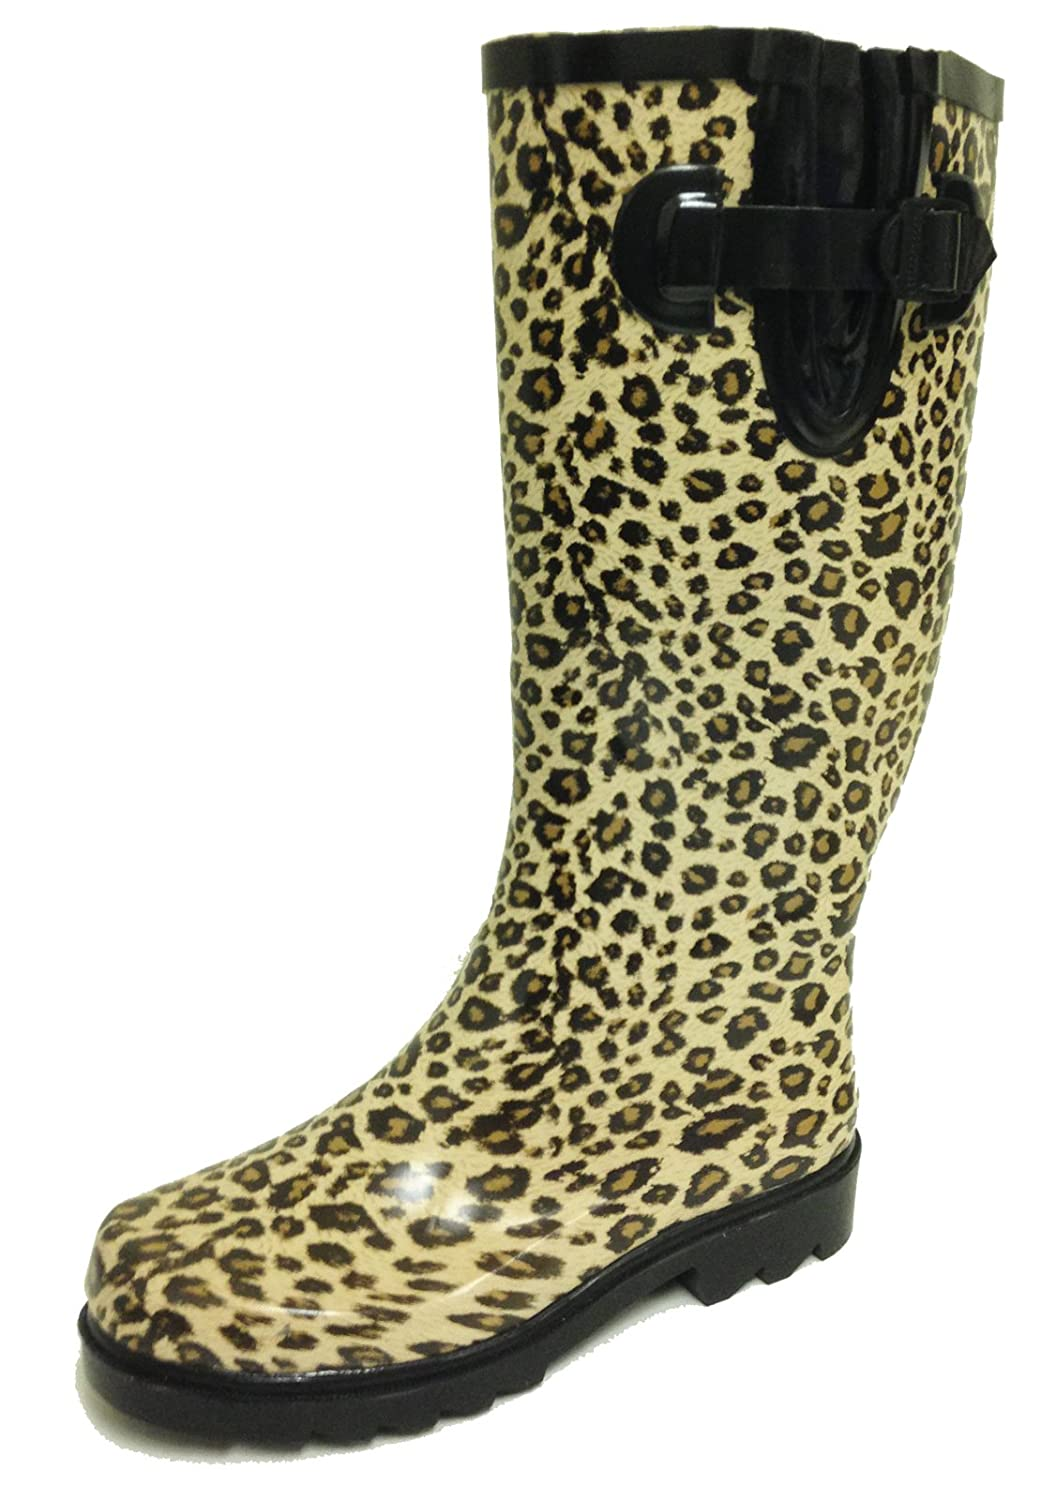 Leopard G4U Women's Rain Boots Multiple Styles color Mid Calf Wellies Buckle Fashion Rubber Knee High Snow shoes